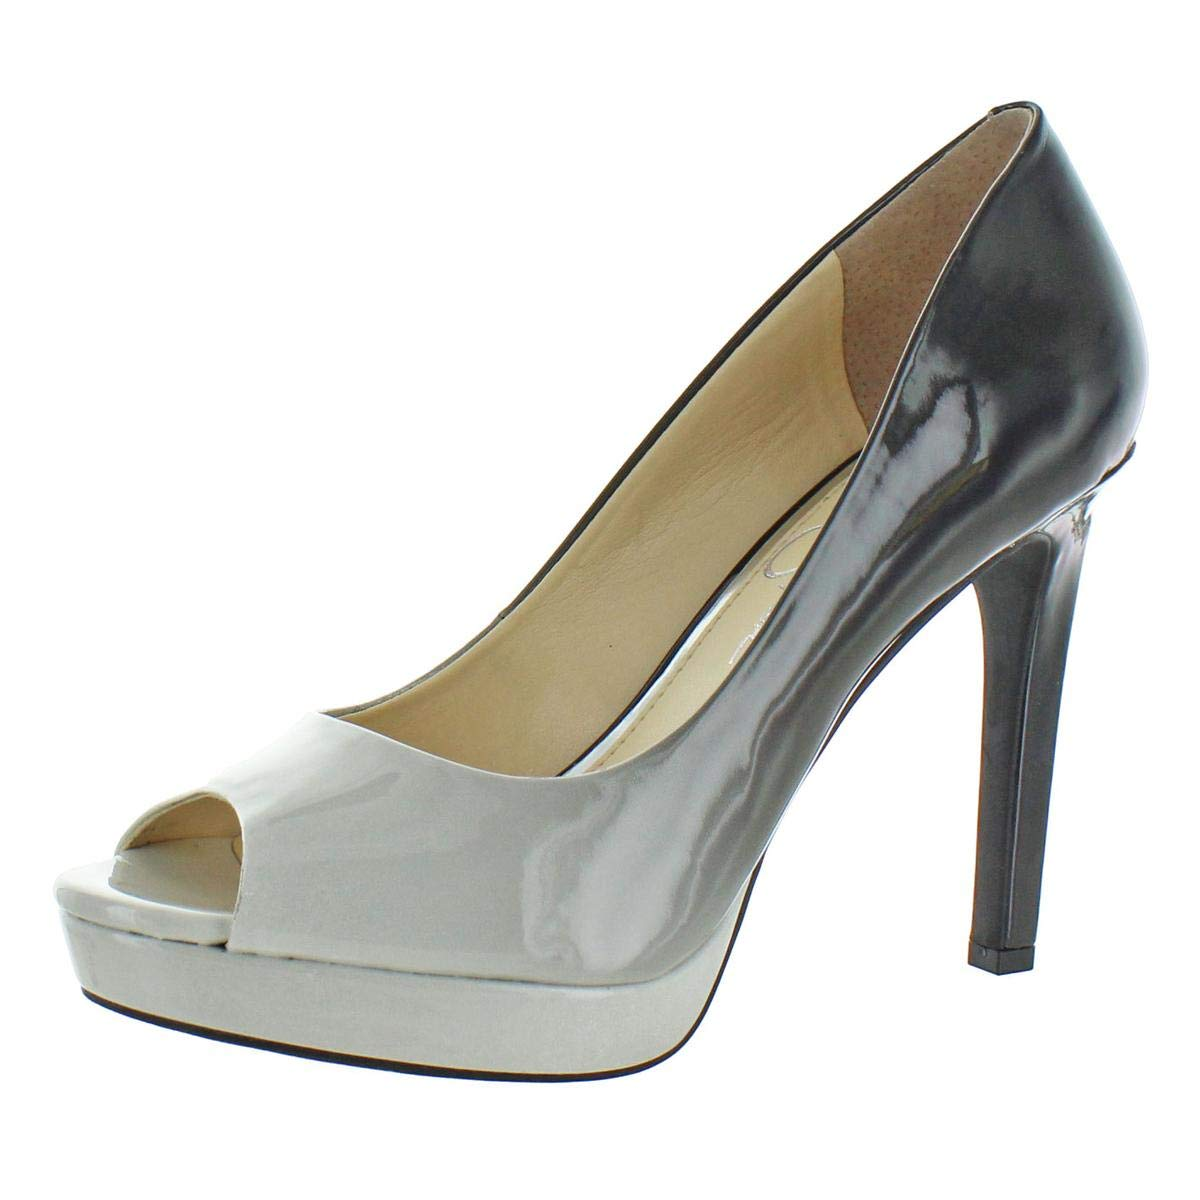 Black White Ombre Patent Jessica Simpson Women's Dalyn